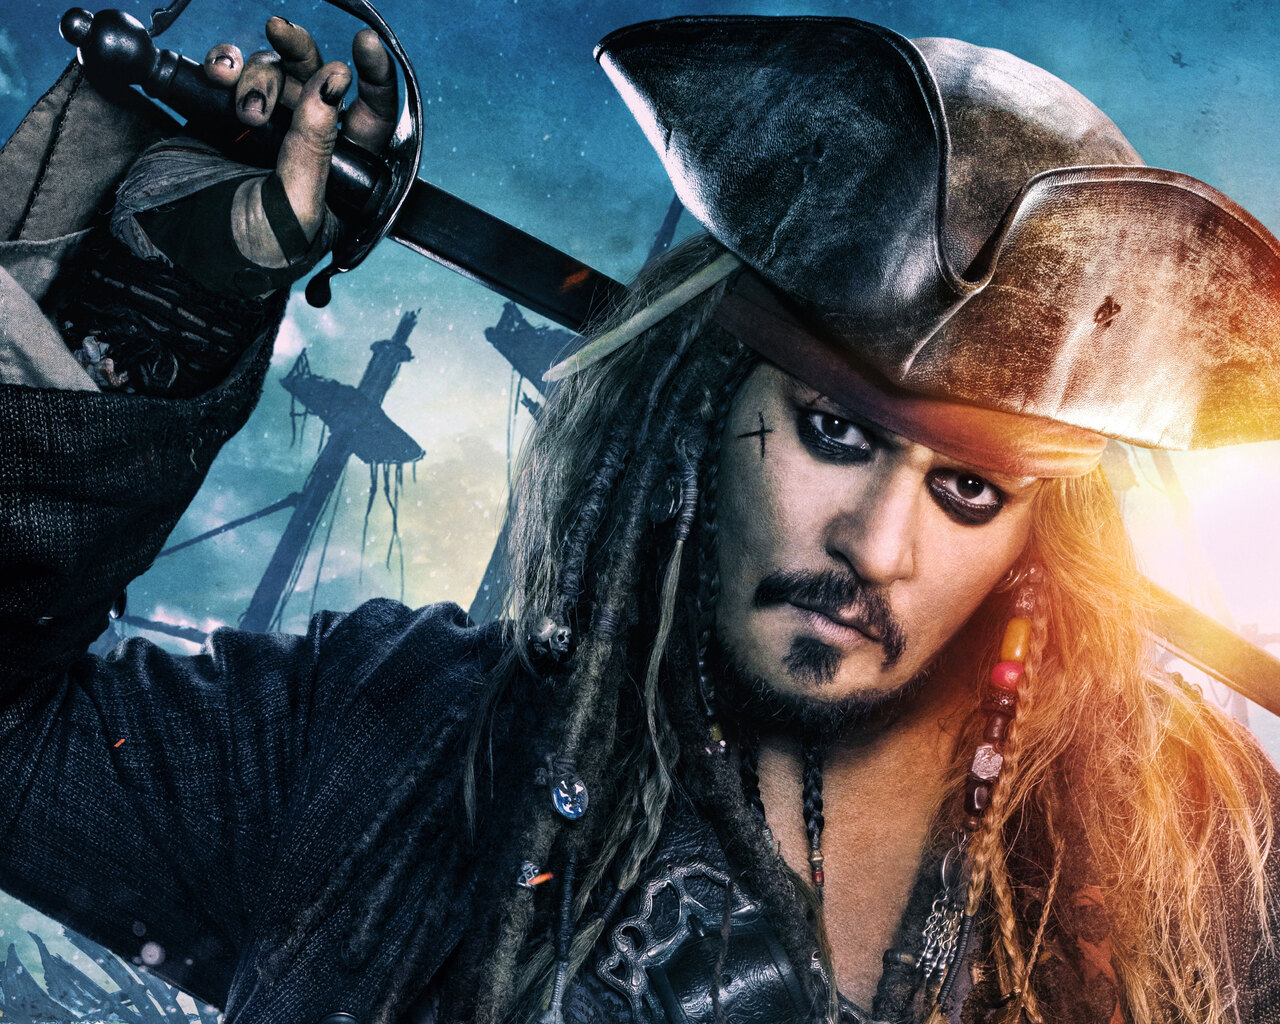 Dead Men Tell No Tales Wallpaper: 1280x1024 Jack Sparrow In Pirates Of The Caribbean Dead